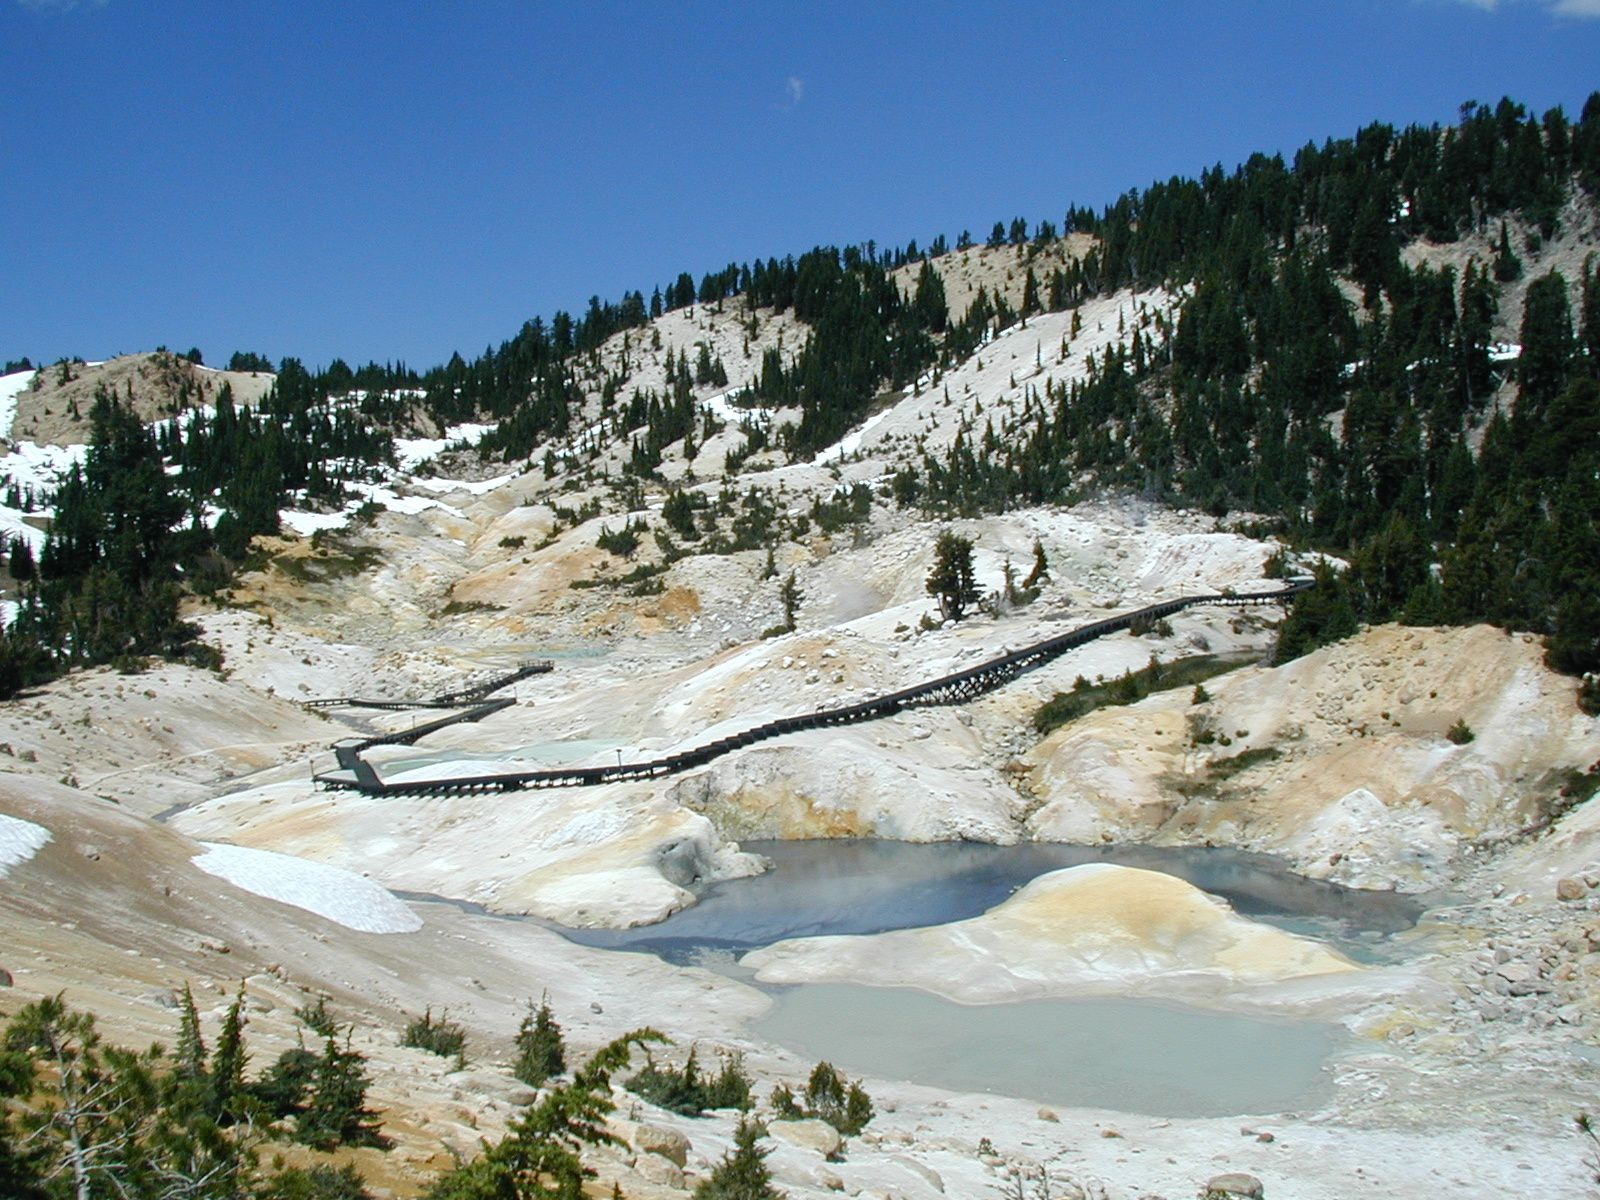 Lassen Volcanic Center - Bumpass Hell hydrothermal area, vizw from the eastern approach trail - NPS Photo